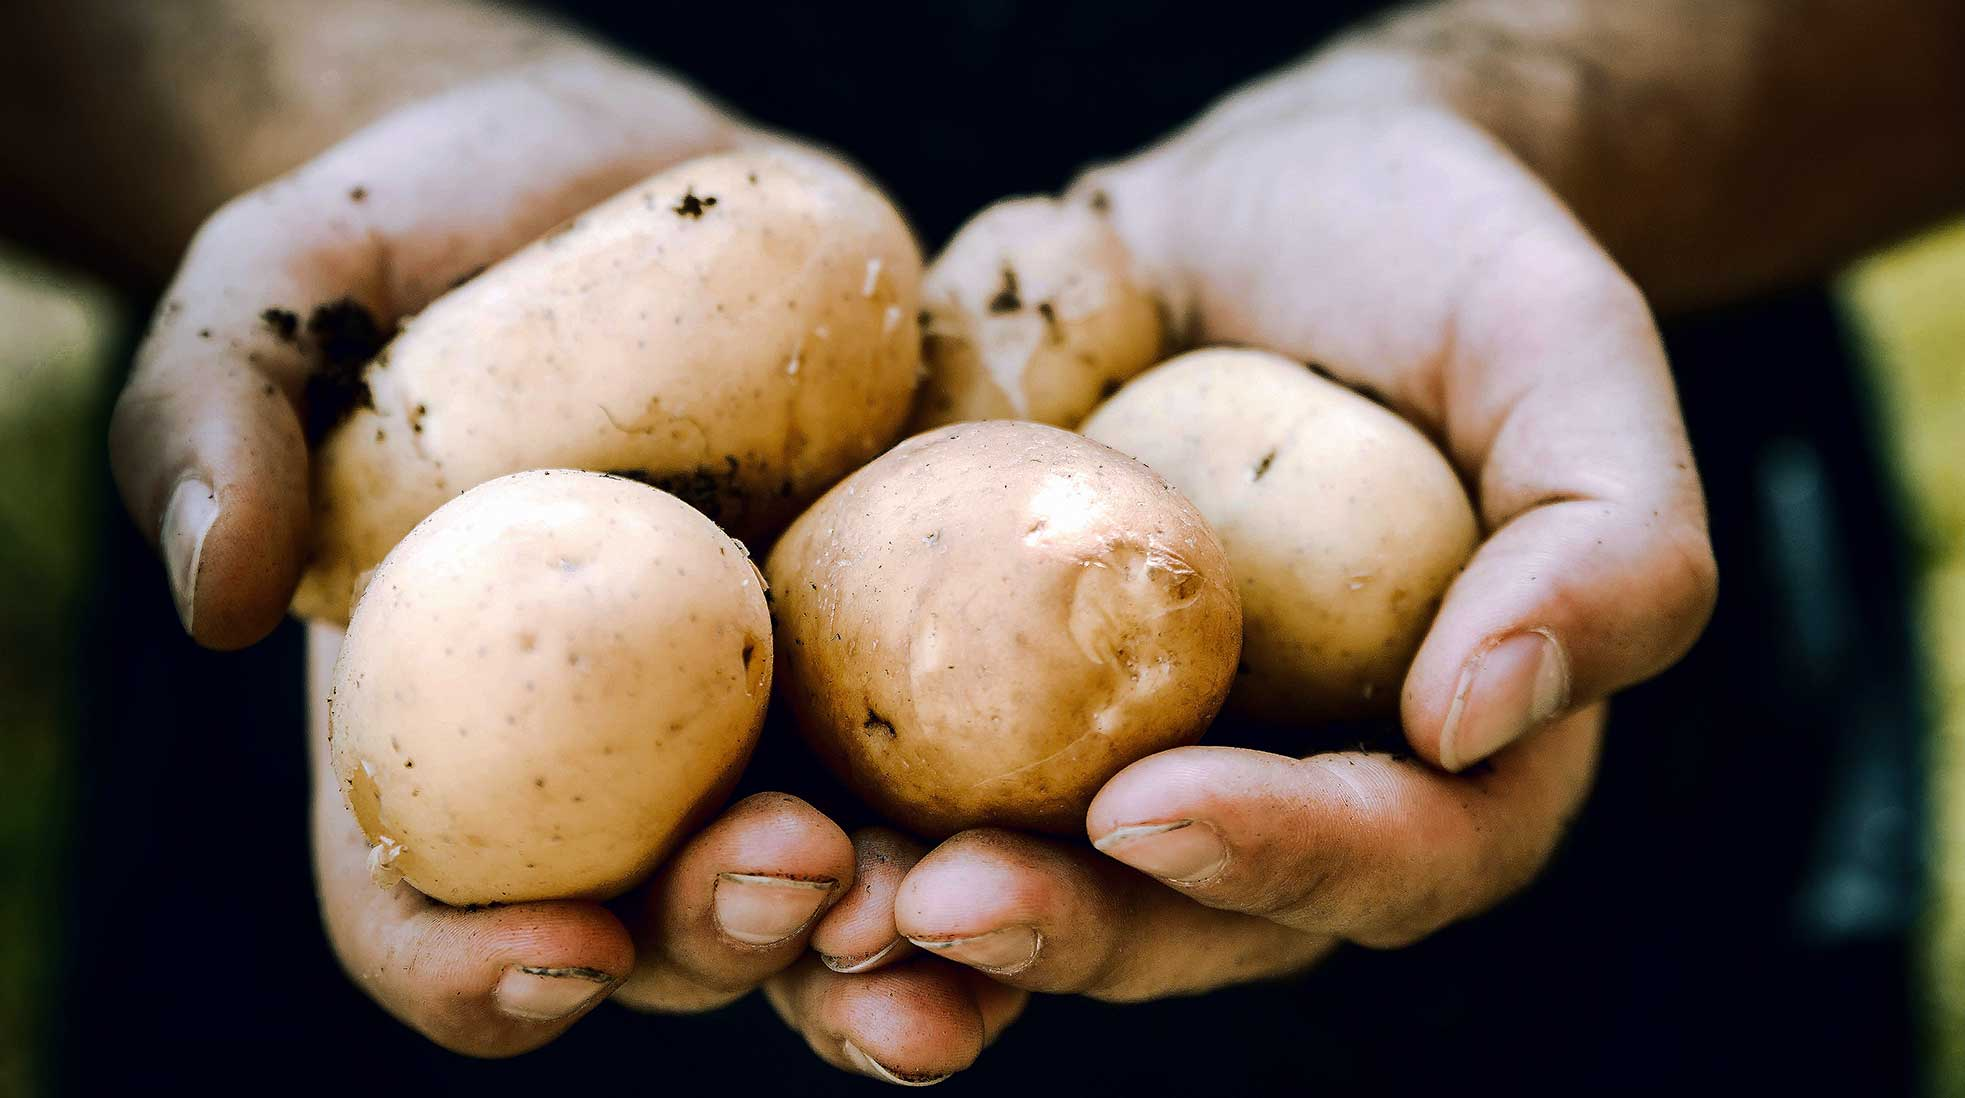 Two hands holding dirty potatoes